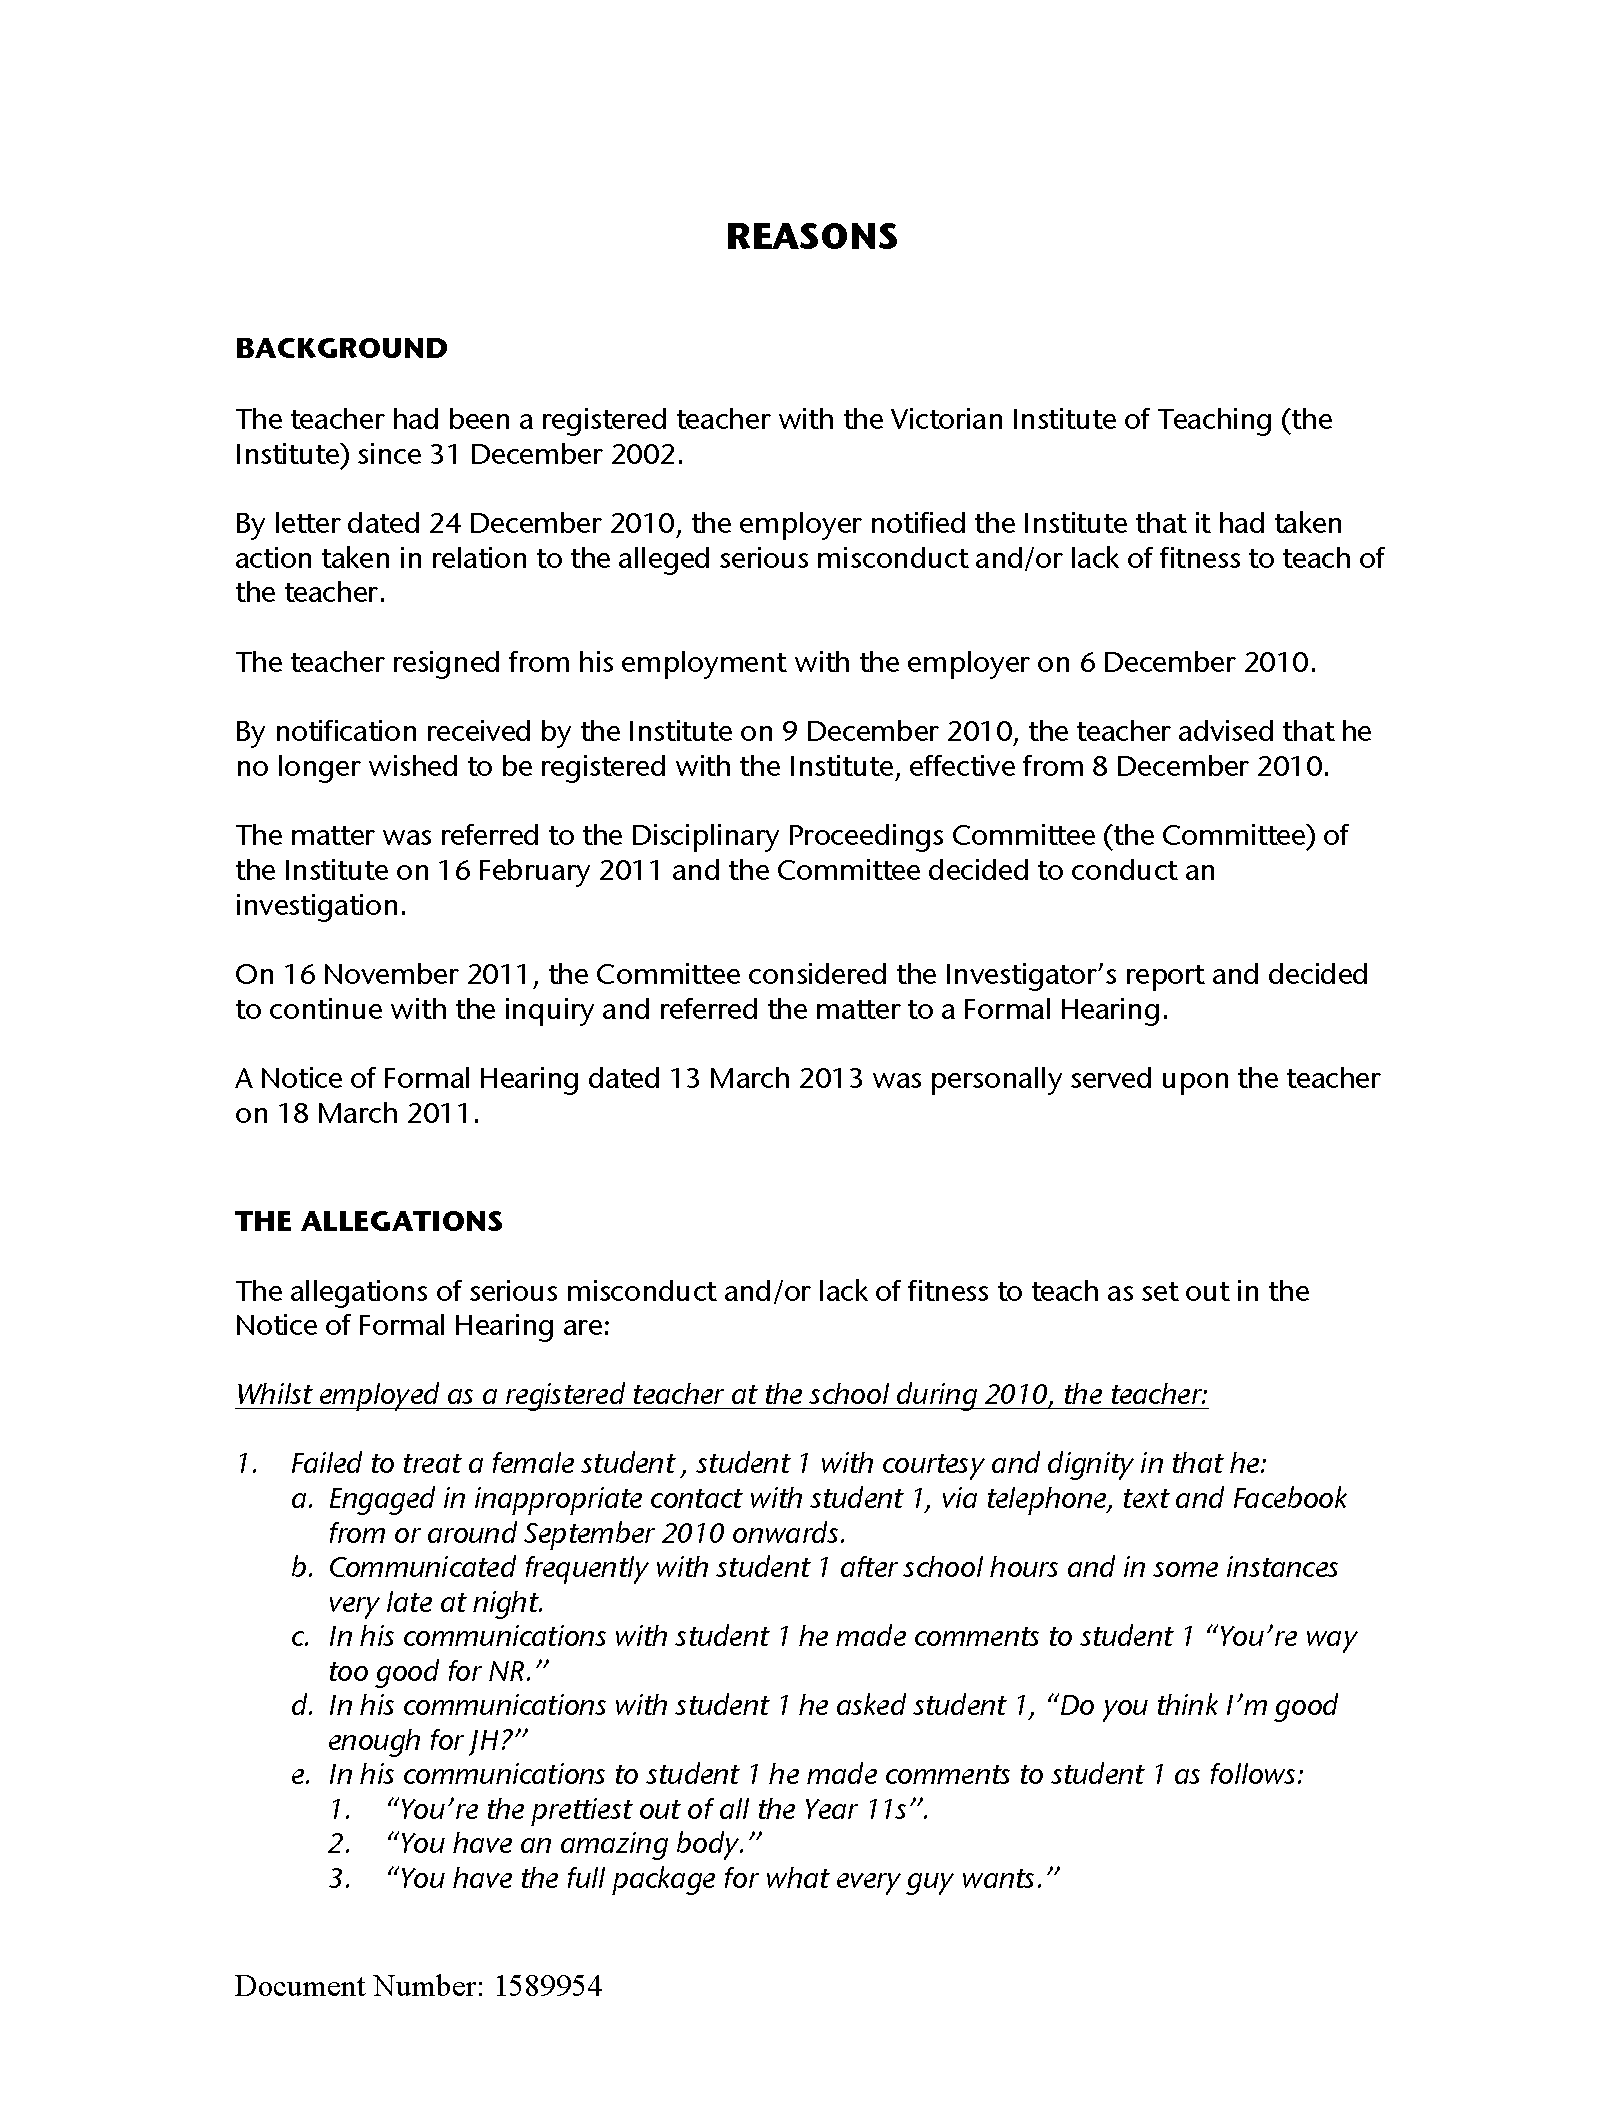 Copy of SanitisedPleydellDecision02.png